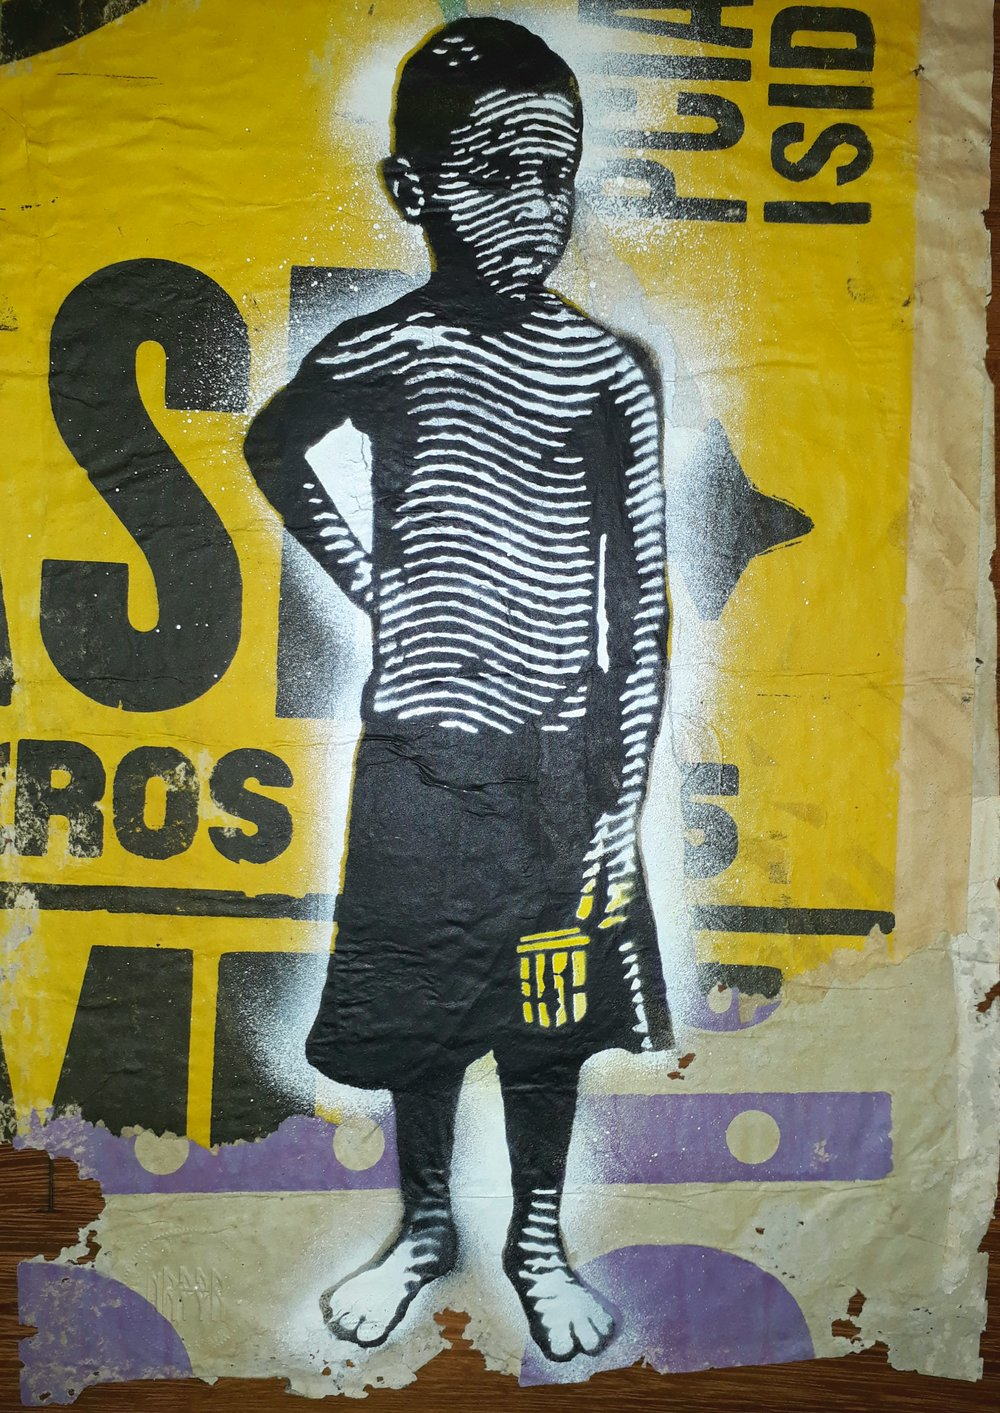 S.T (2018) - 41,5 x 30 cm - Stencil y pintura en aerosol sobre Cartel / Stencil and spray paint on found poster